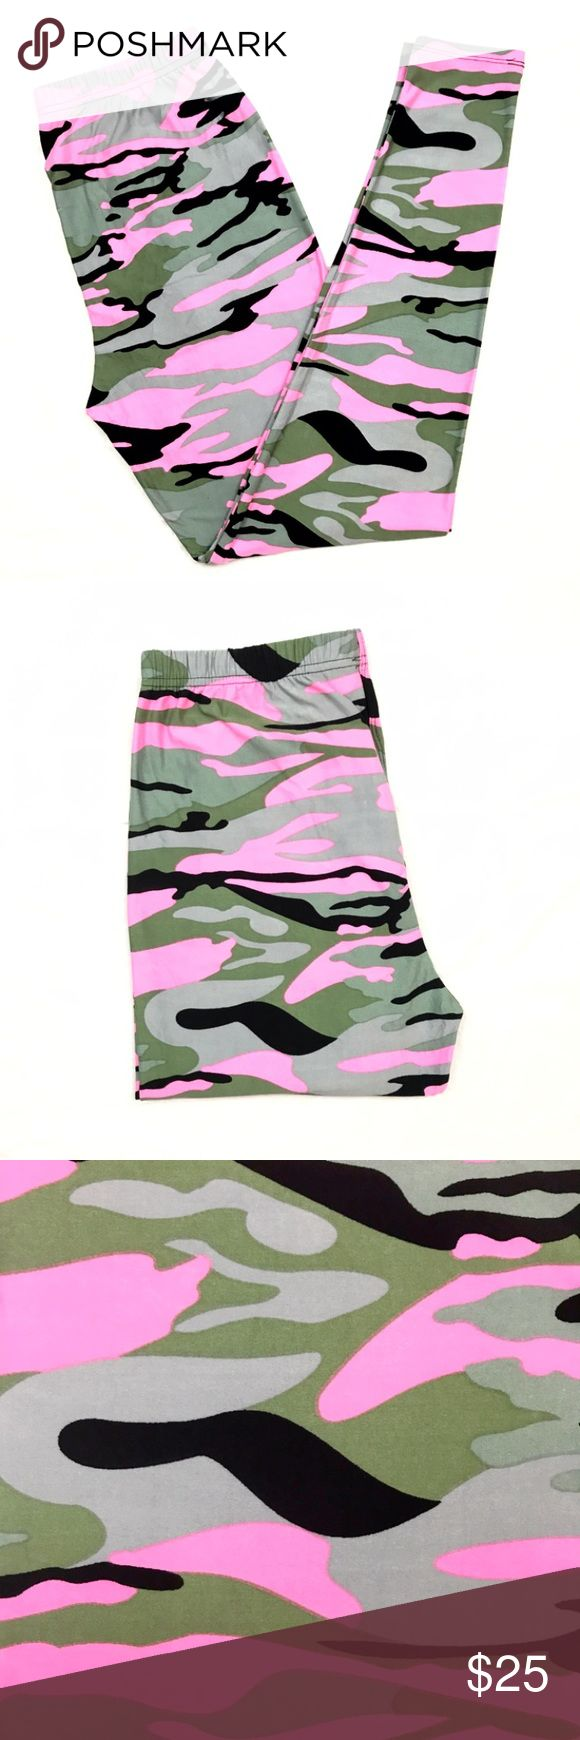 Buttery Soft Pink Camouflage CAMO Leggings Plus TC BUTTERY SOFT PINK CAMOUFLAGE CAMO LEGGINGS 